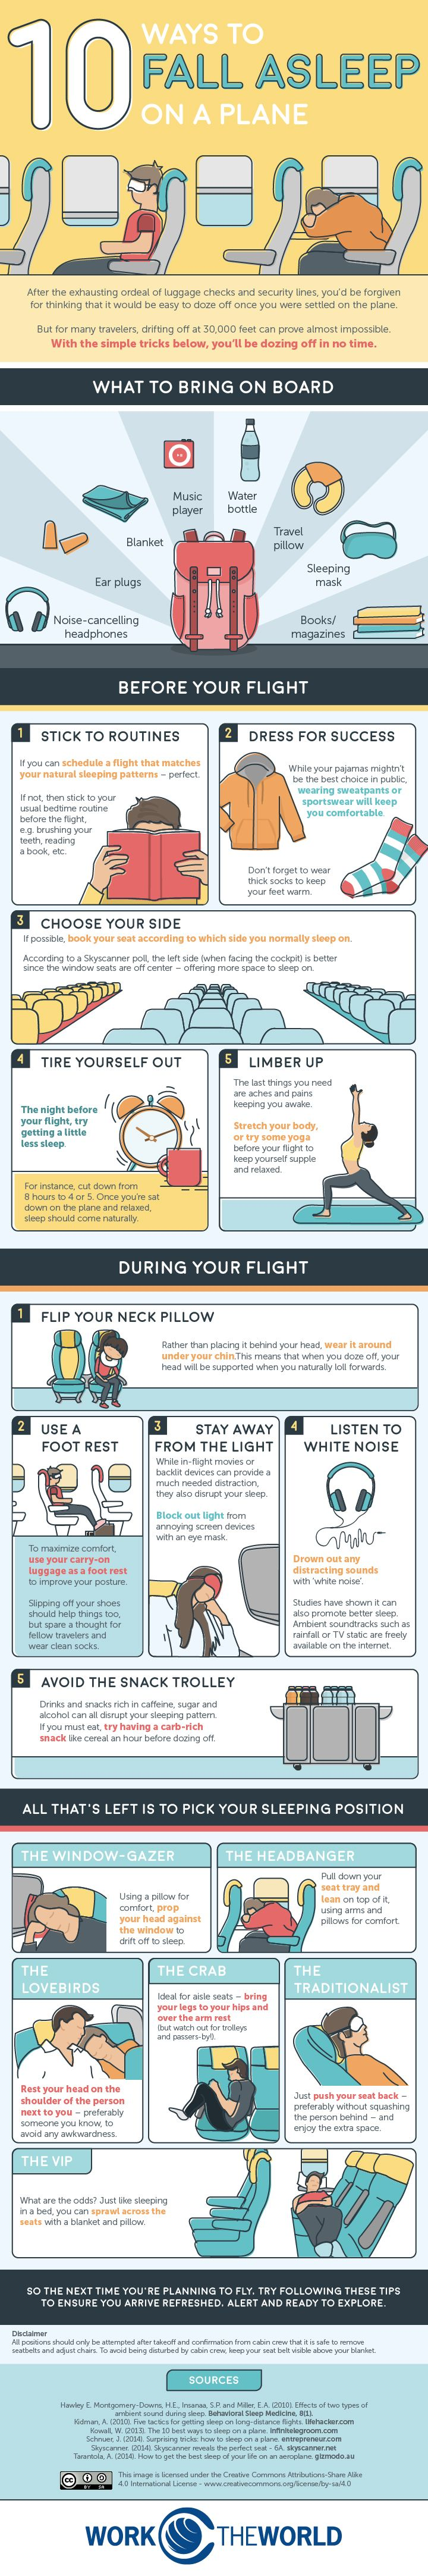 10-ways-to-fall-asleep-on-a-plane-v3